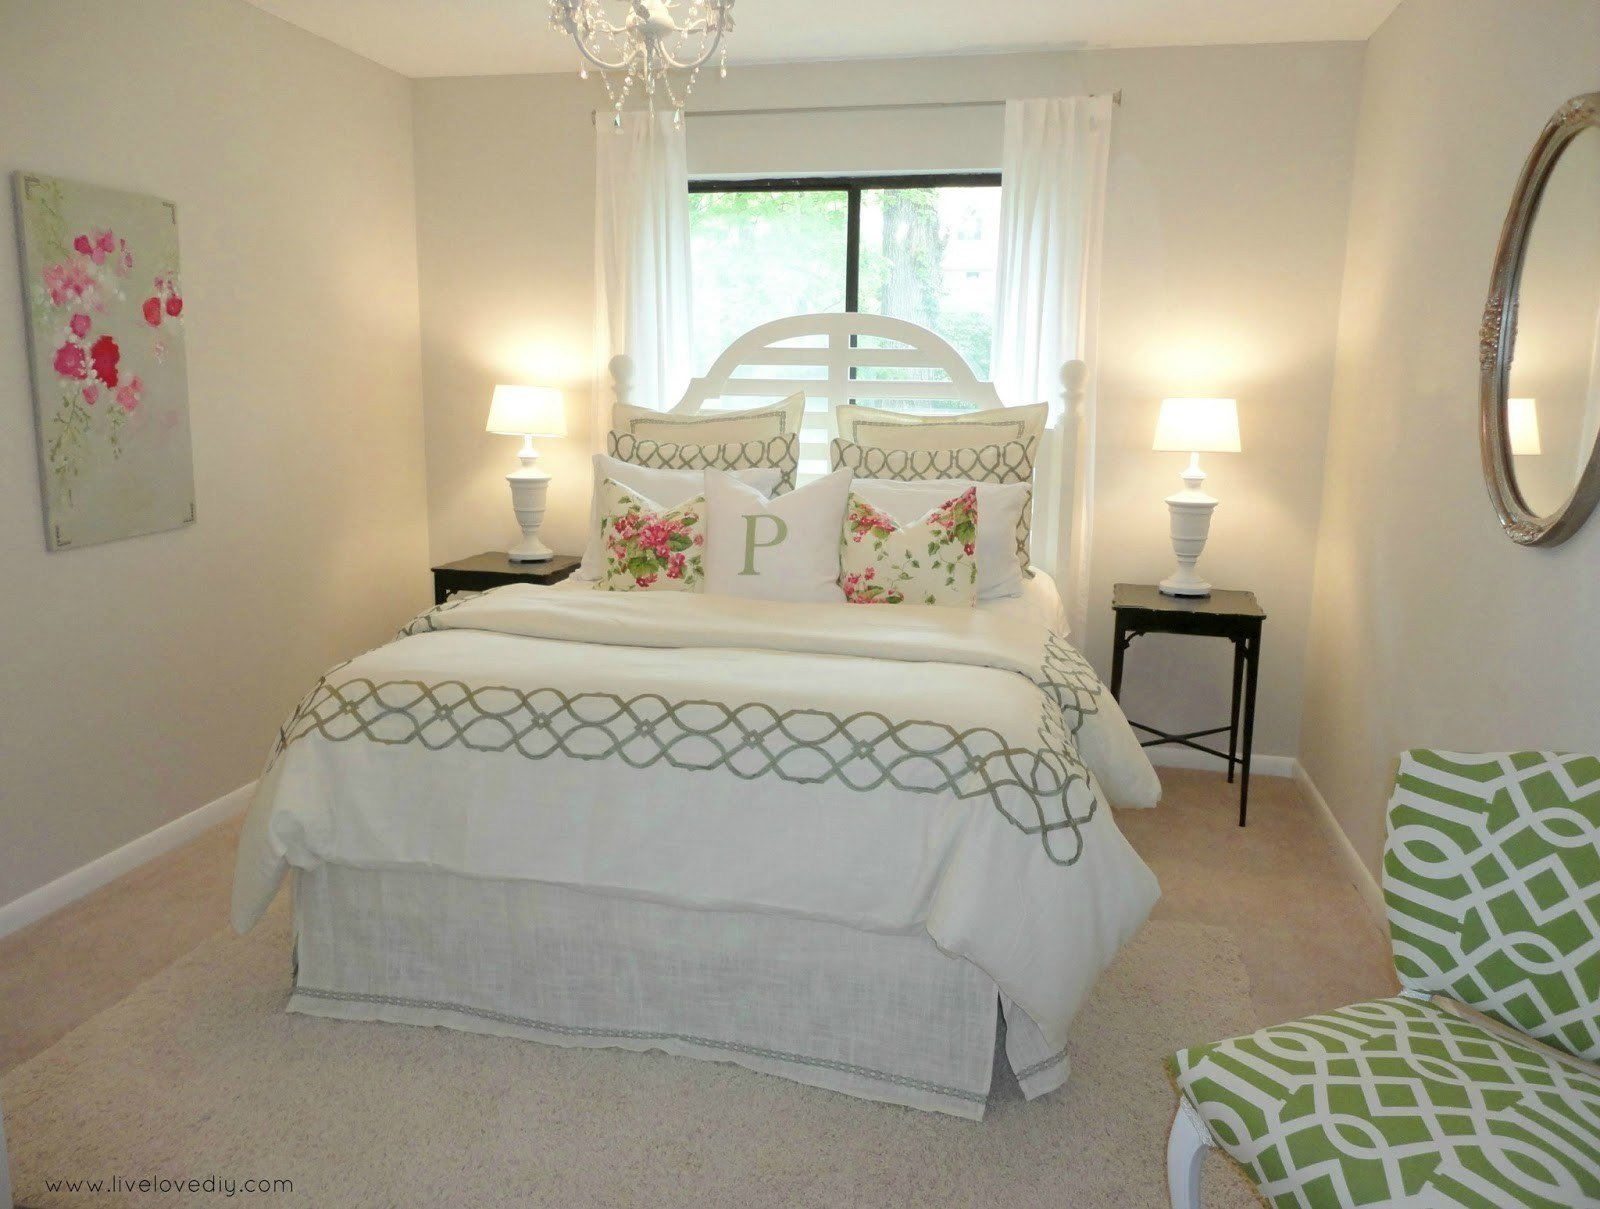 Best Spare Bedroom Ideas On A Budget Psoriasisguru Com With Pictures